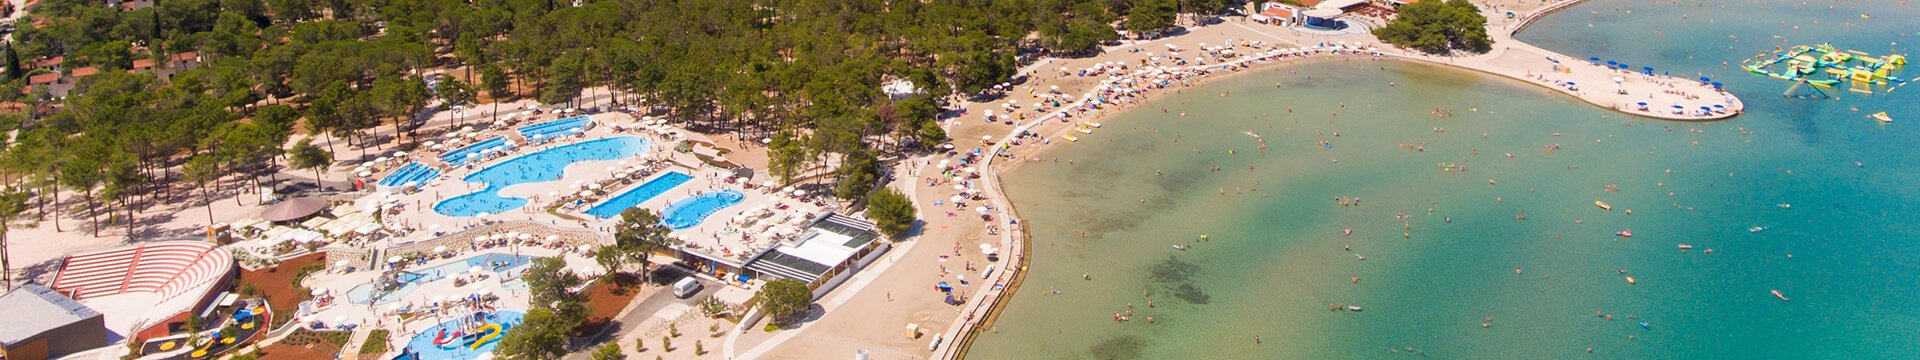 News in 2018.- Campsite Zaton Holiday Resort